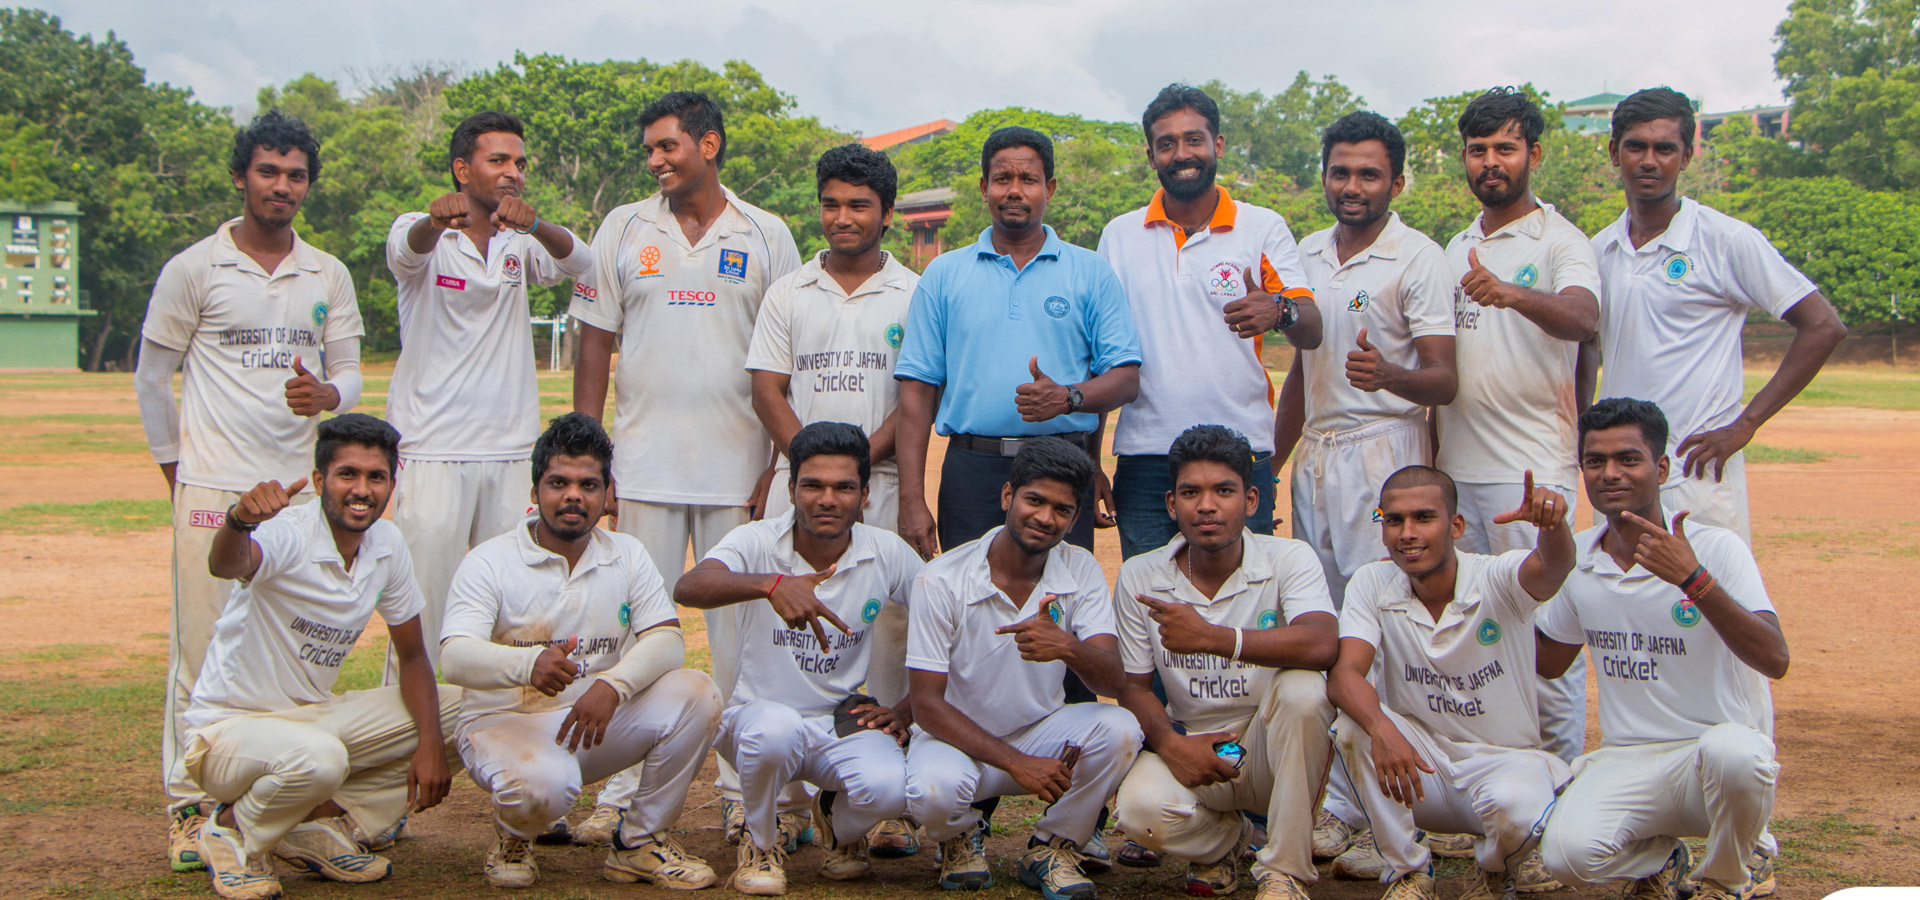 University of Jaffna enters Quarter Finals beating Moratuwa University